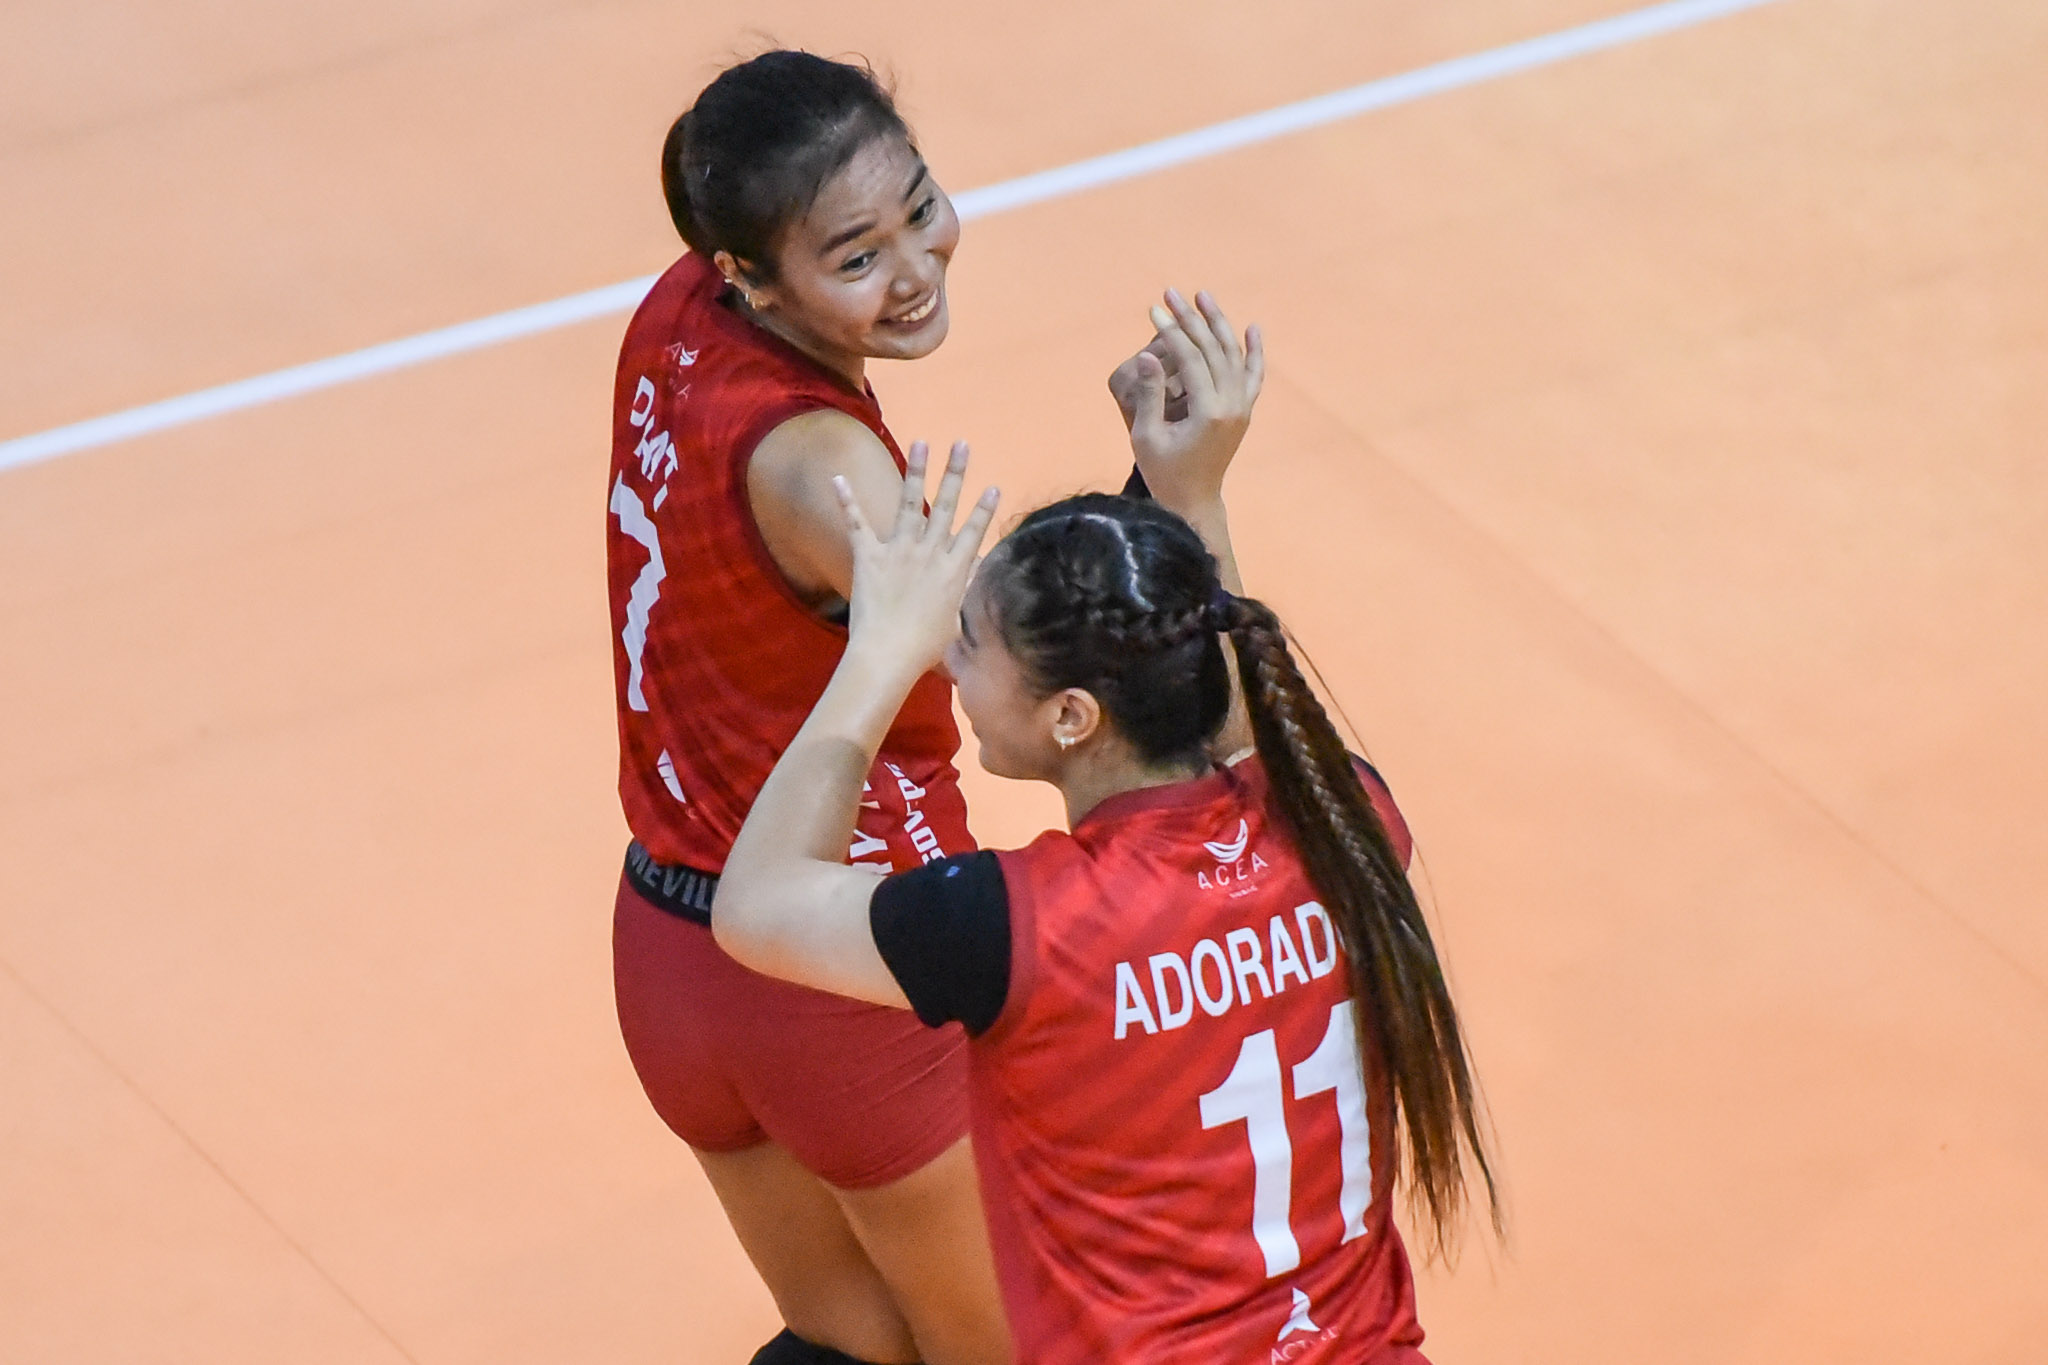 2021-PVL-Open-Chery-Tiggo-vs.-Army-Mylene-Paat-7183 Santiago, Paat welcome compressed PVL sched as they can join NT earlier News PVL Volleyball  - philippine sports news